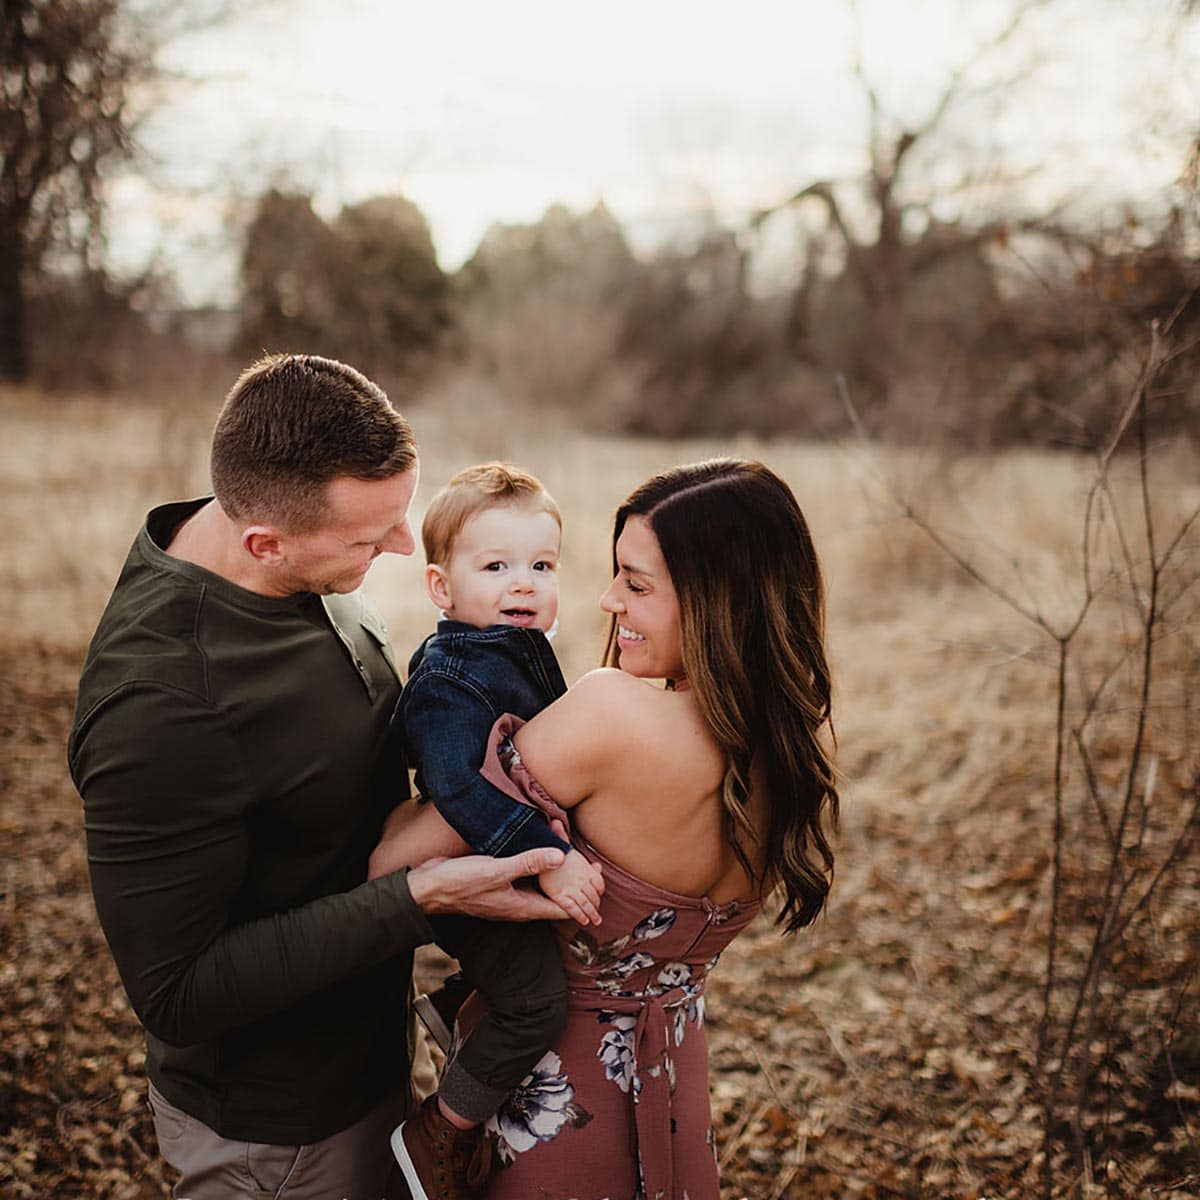 Shooting a Complete Family Session with a young family